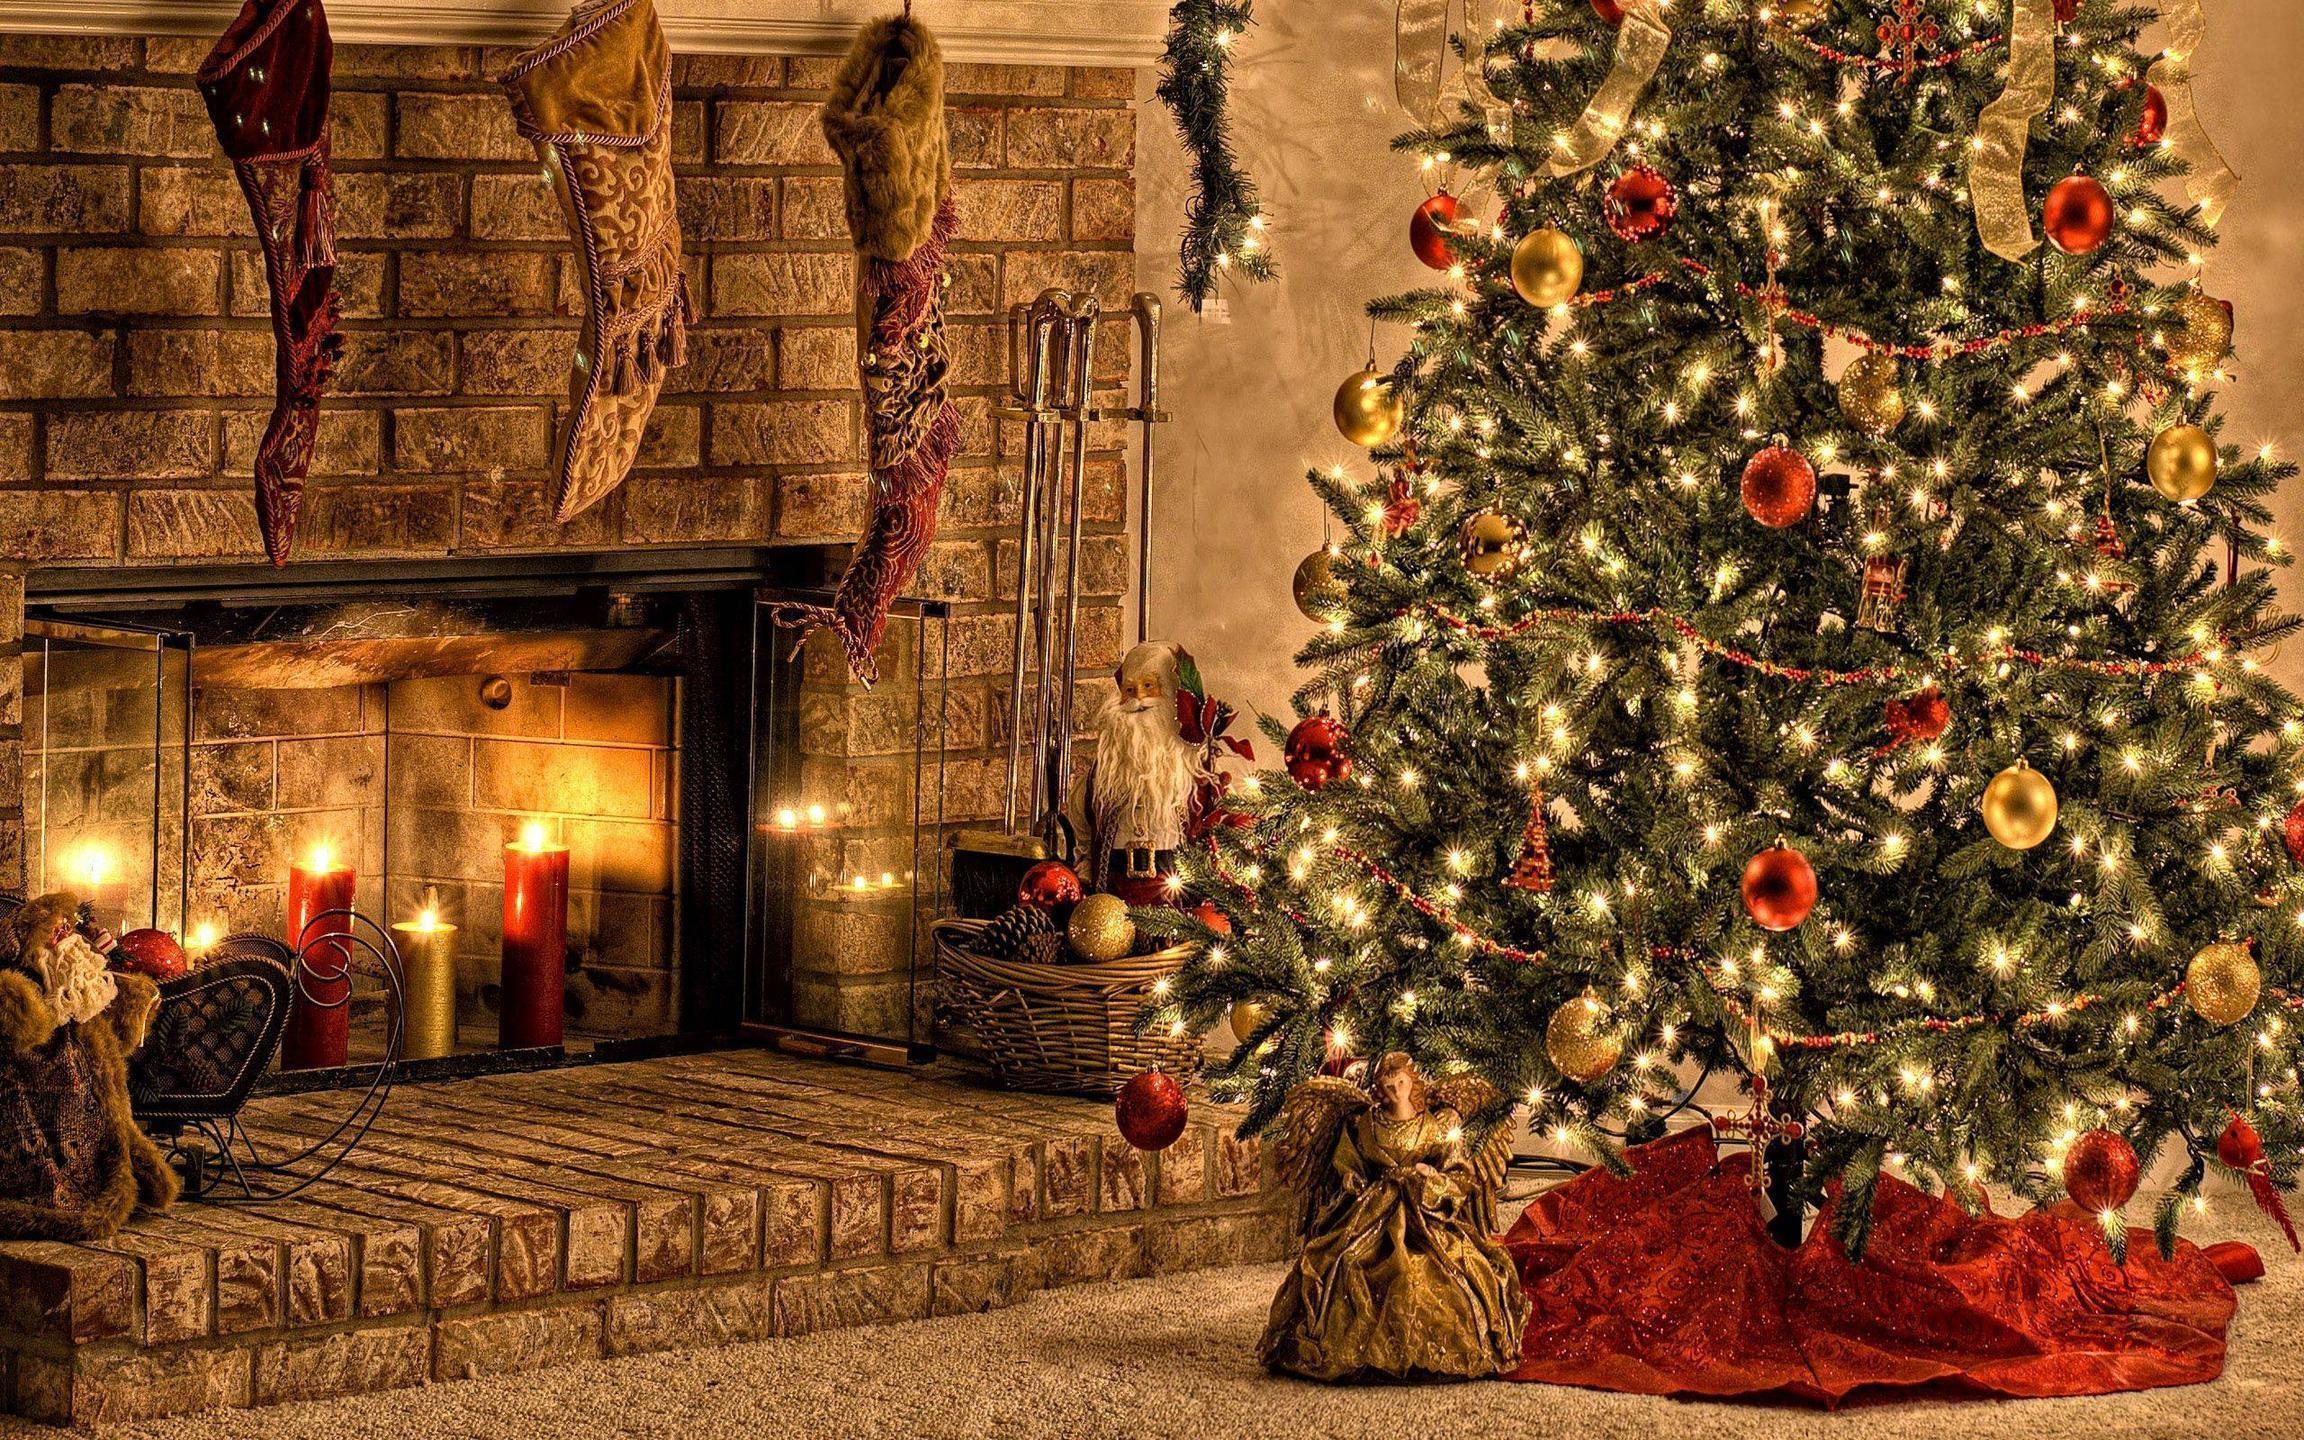 Free Fireplace Wallpaper: Christmas Fireplace Backgrounds